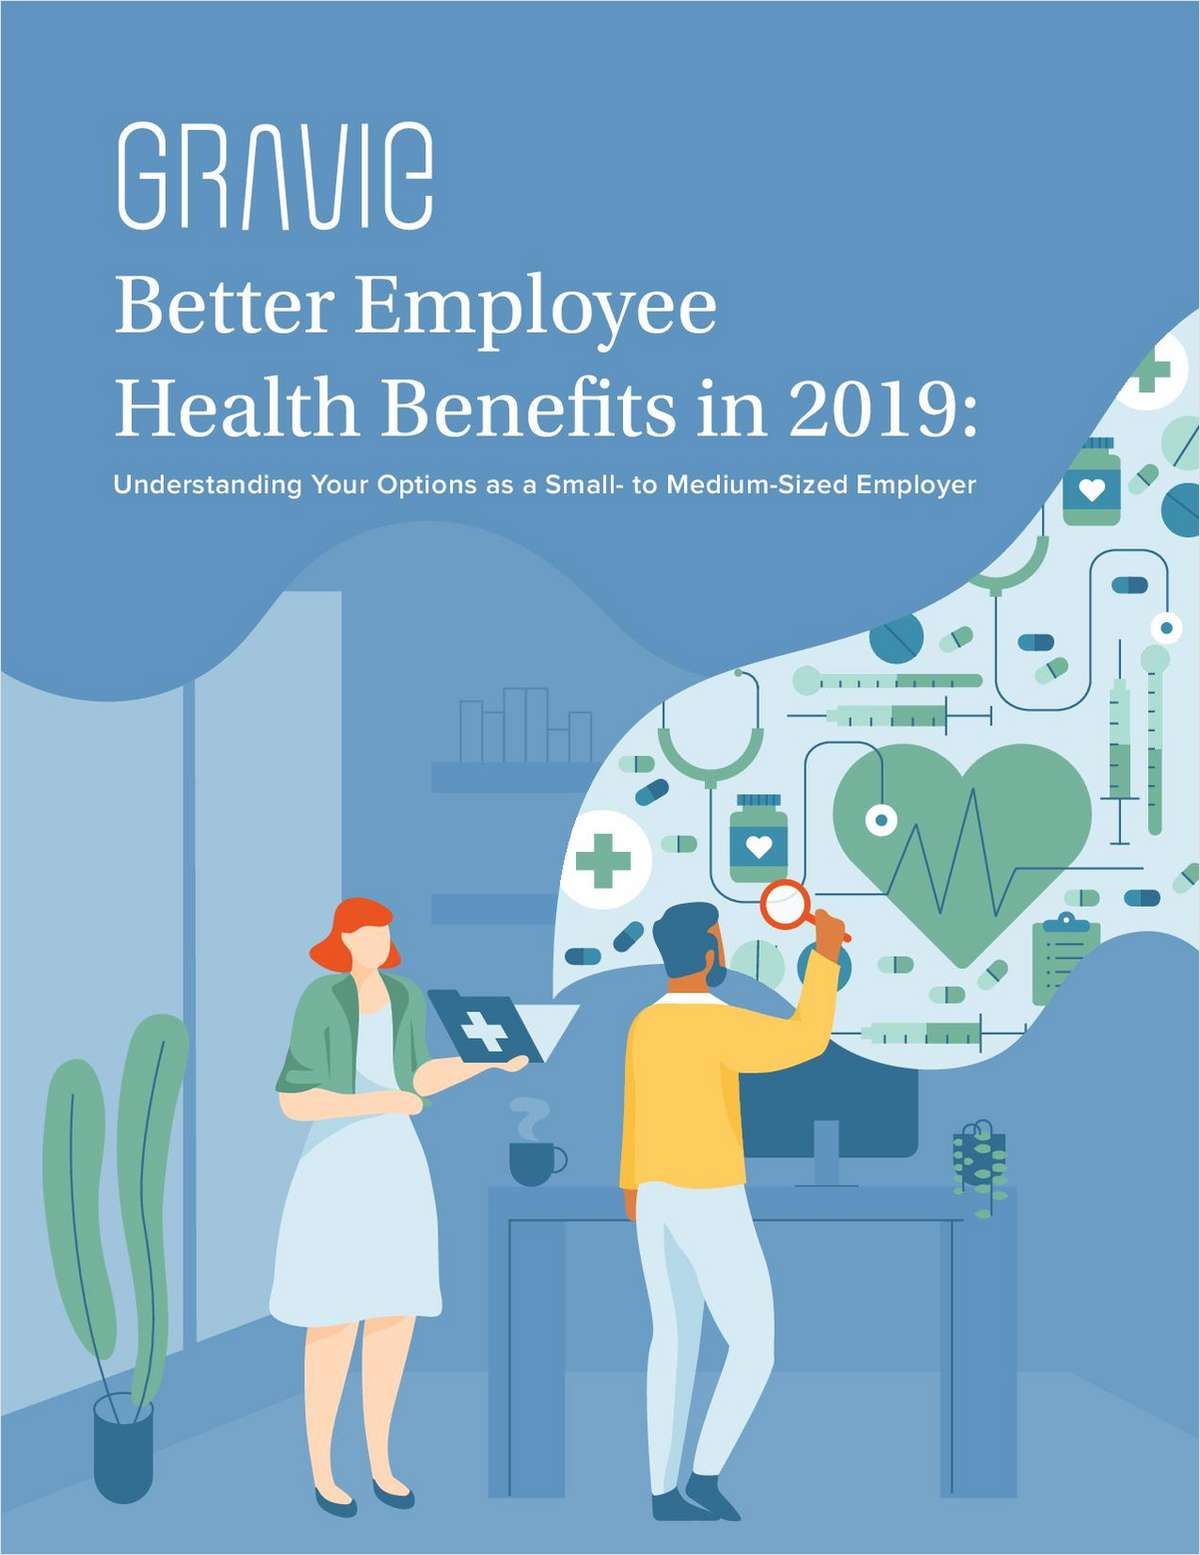 Better Employee Health Benefits in 2019: Understanding Your Options as a Small- to Medium-Sized Employer